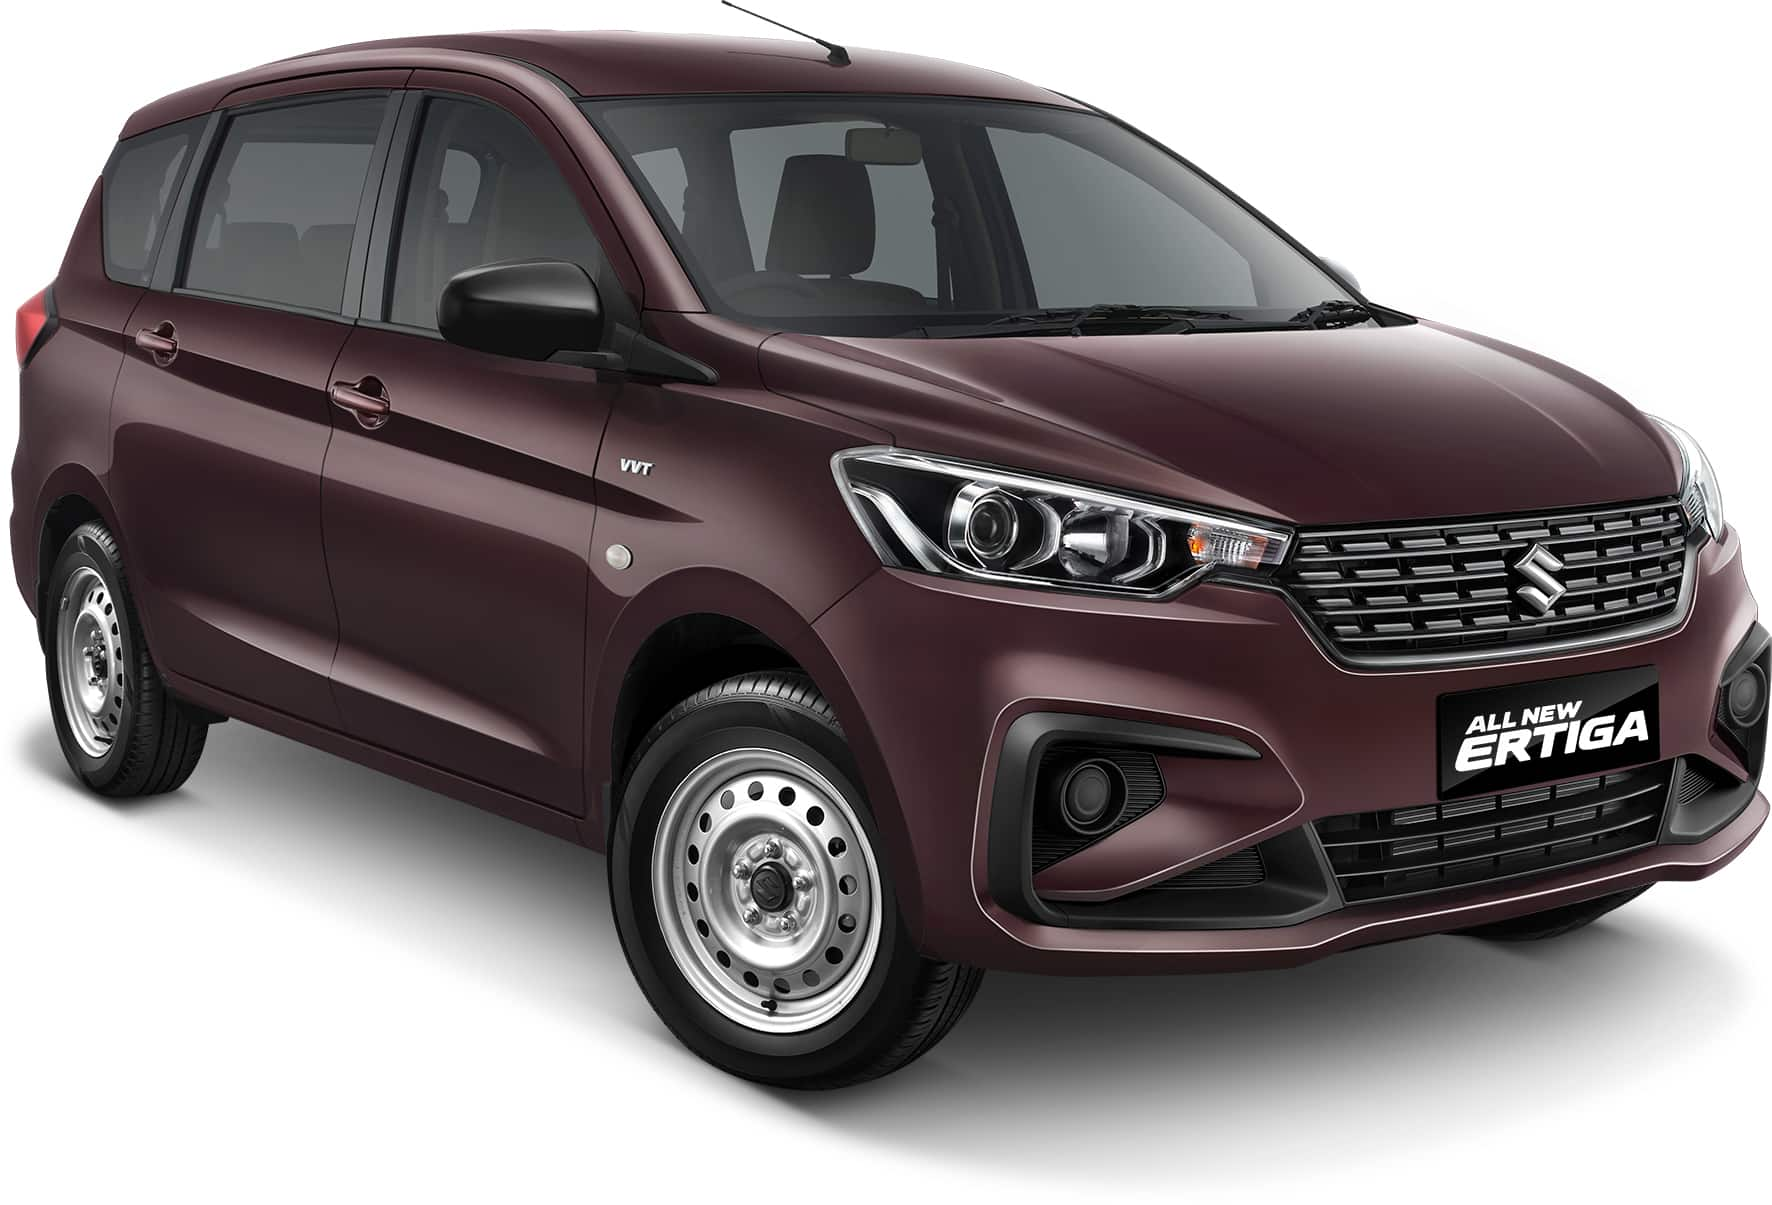 All New Ertiga GA - MT